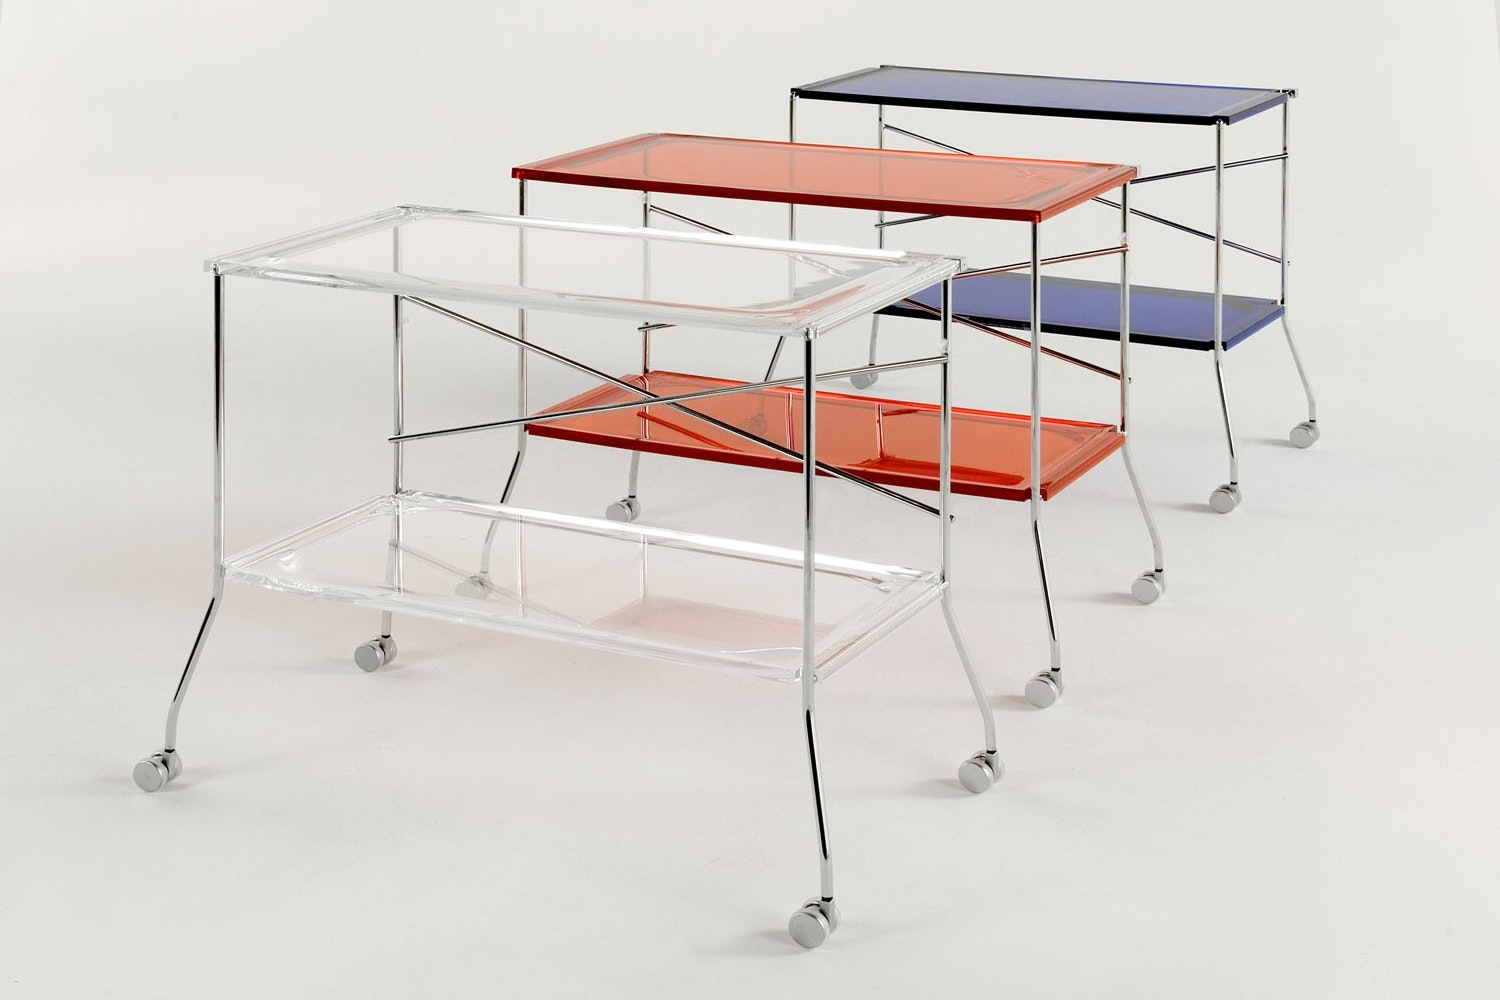 Flip Trolley by Antonio Citterio with Toan Nguyen for Kartell